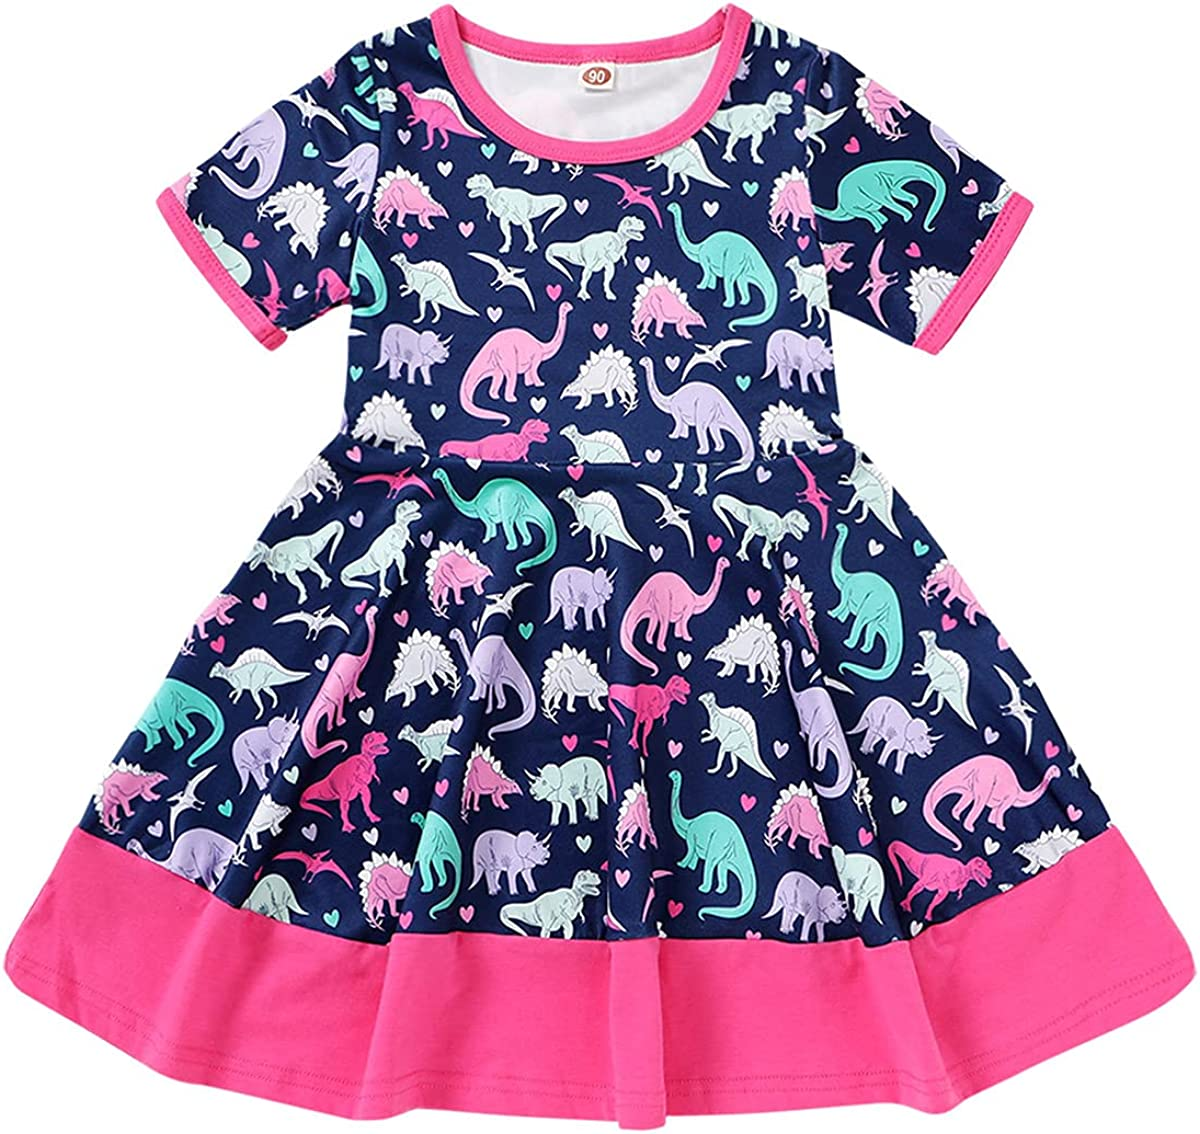 Happy Town Max 76% OFF Kids Baby Girls Dinosaur Fly Clothes Max 42% OFF Ruffle Sle Dress